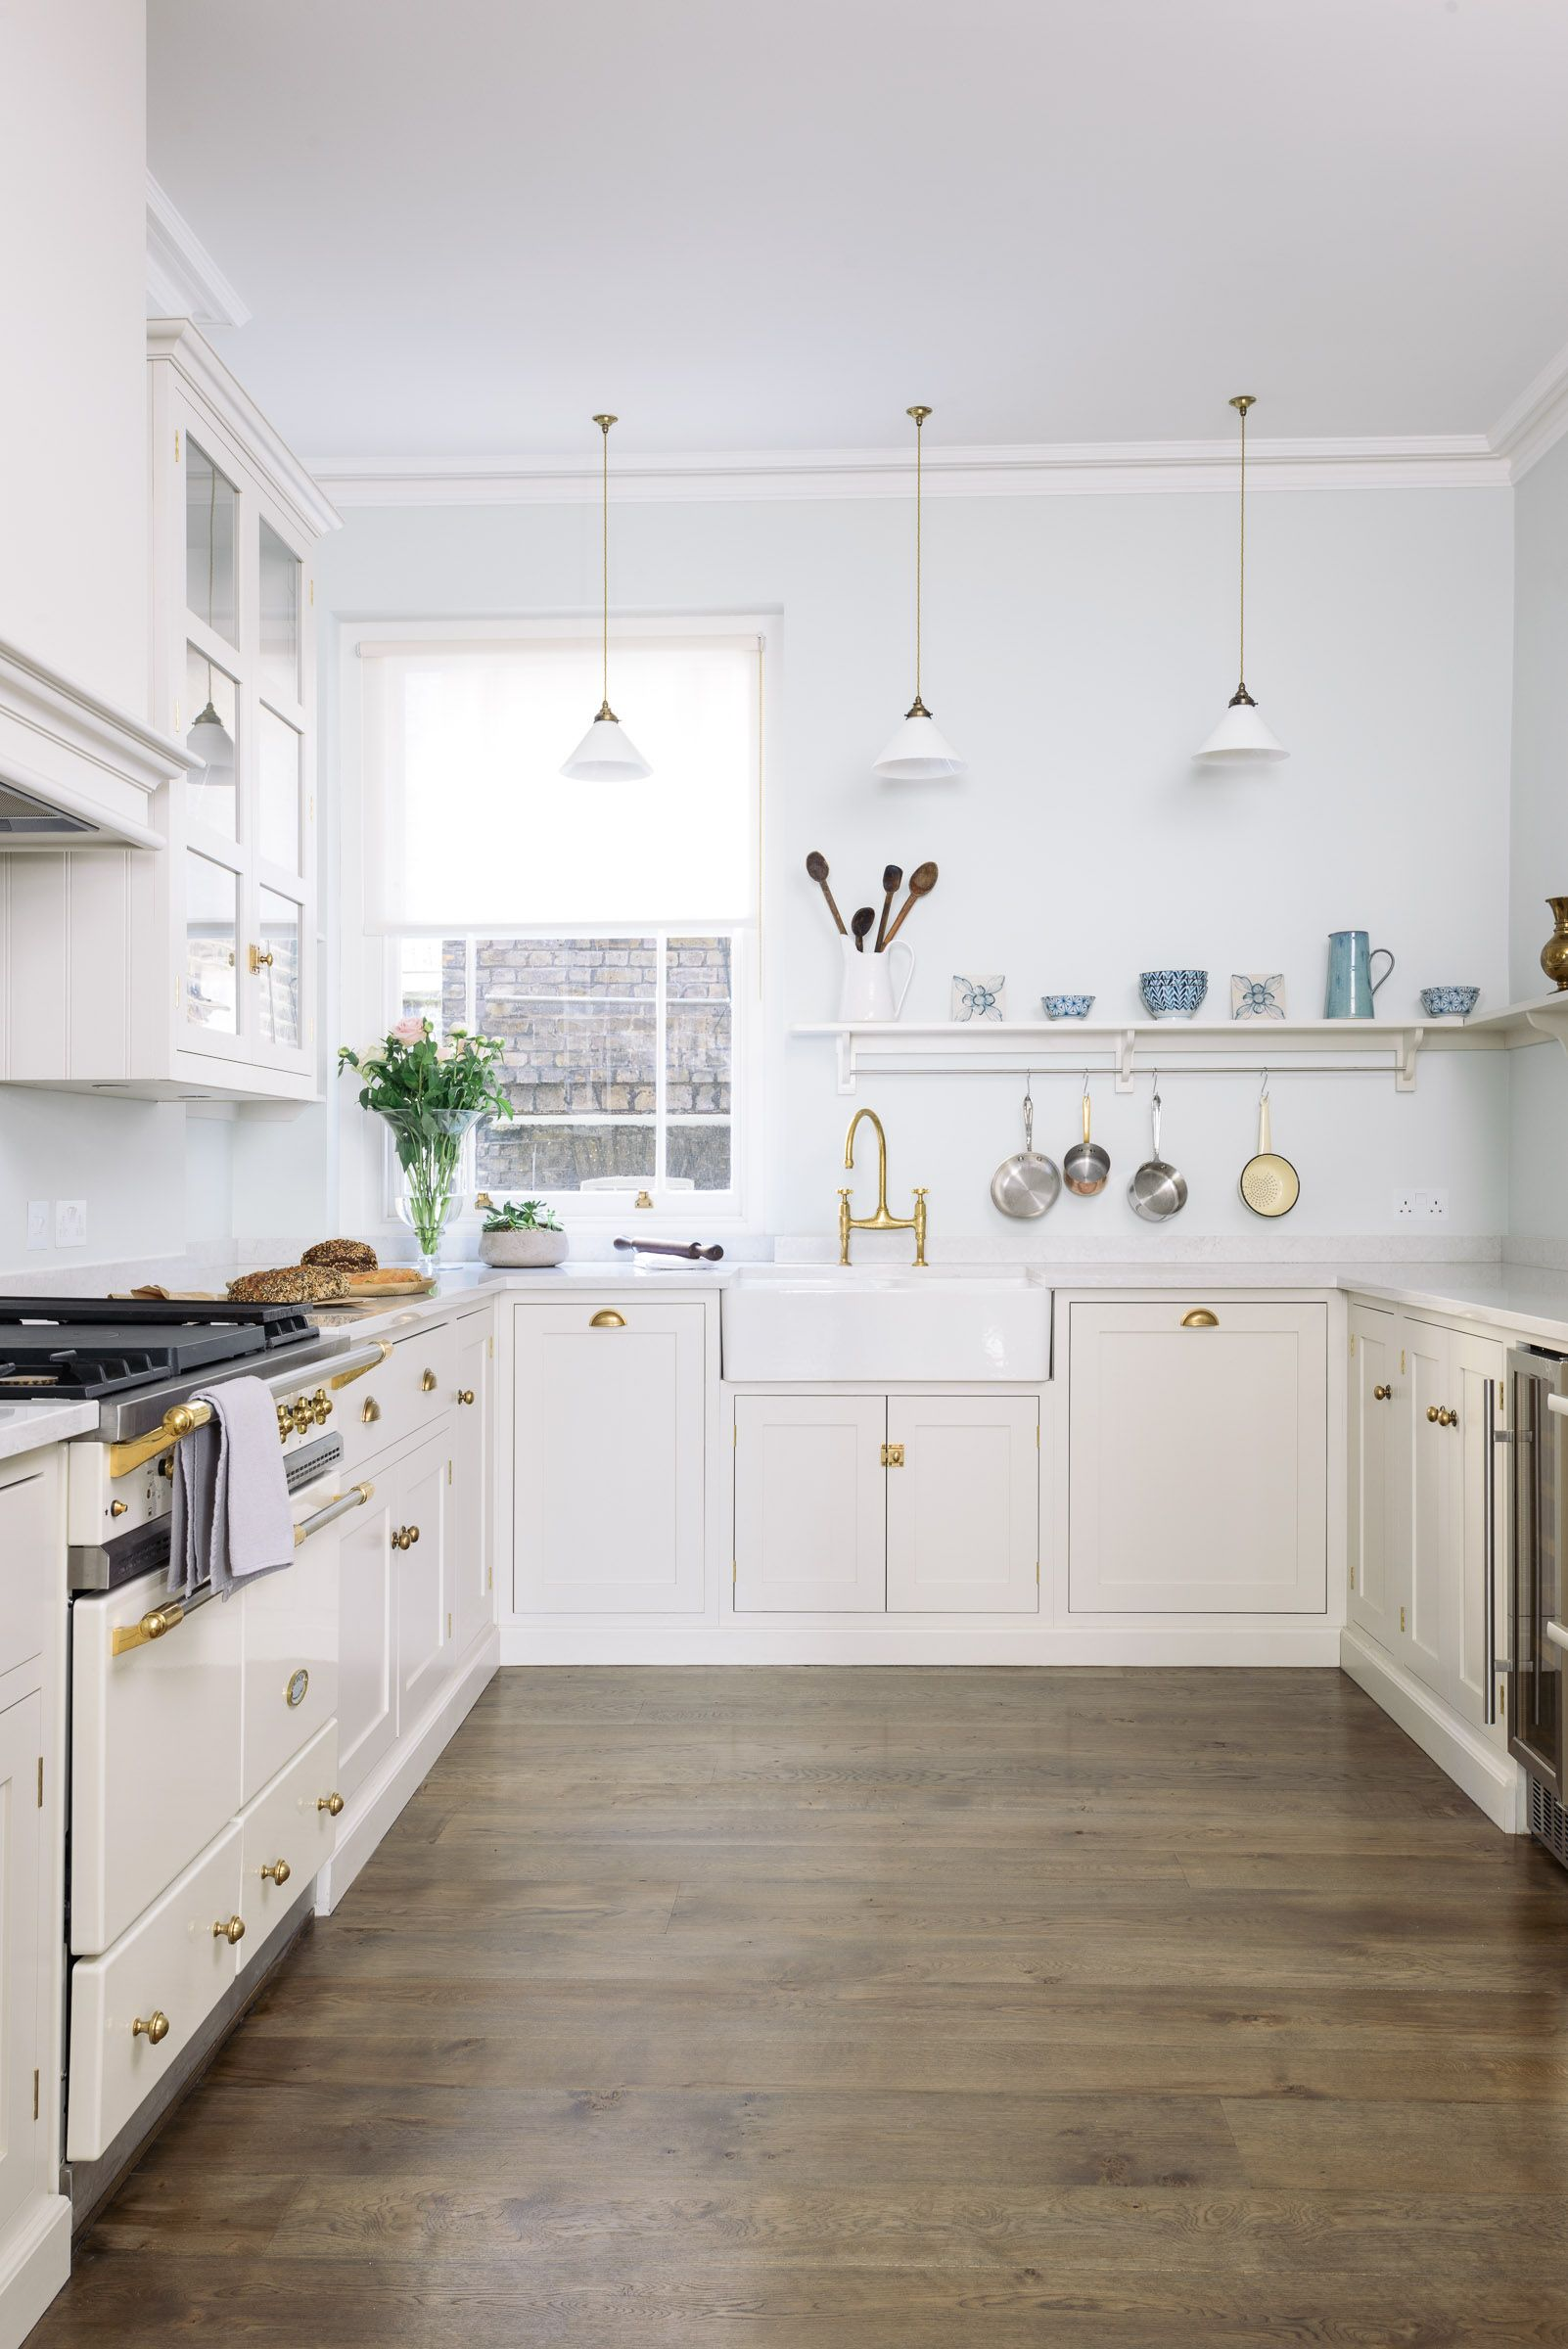 A Beautiful Bright Soft Grey Kitchen With Brass Handles And Taps A - Soft grey kitchen